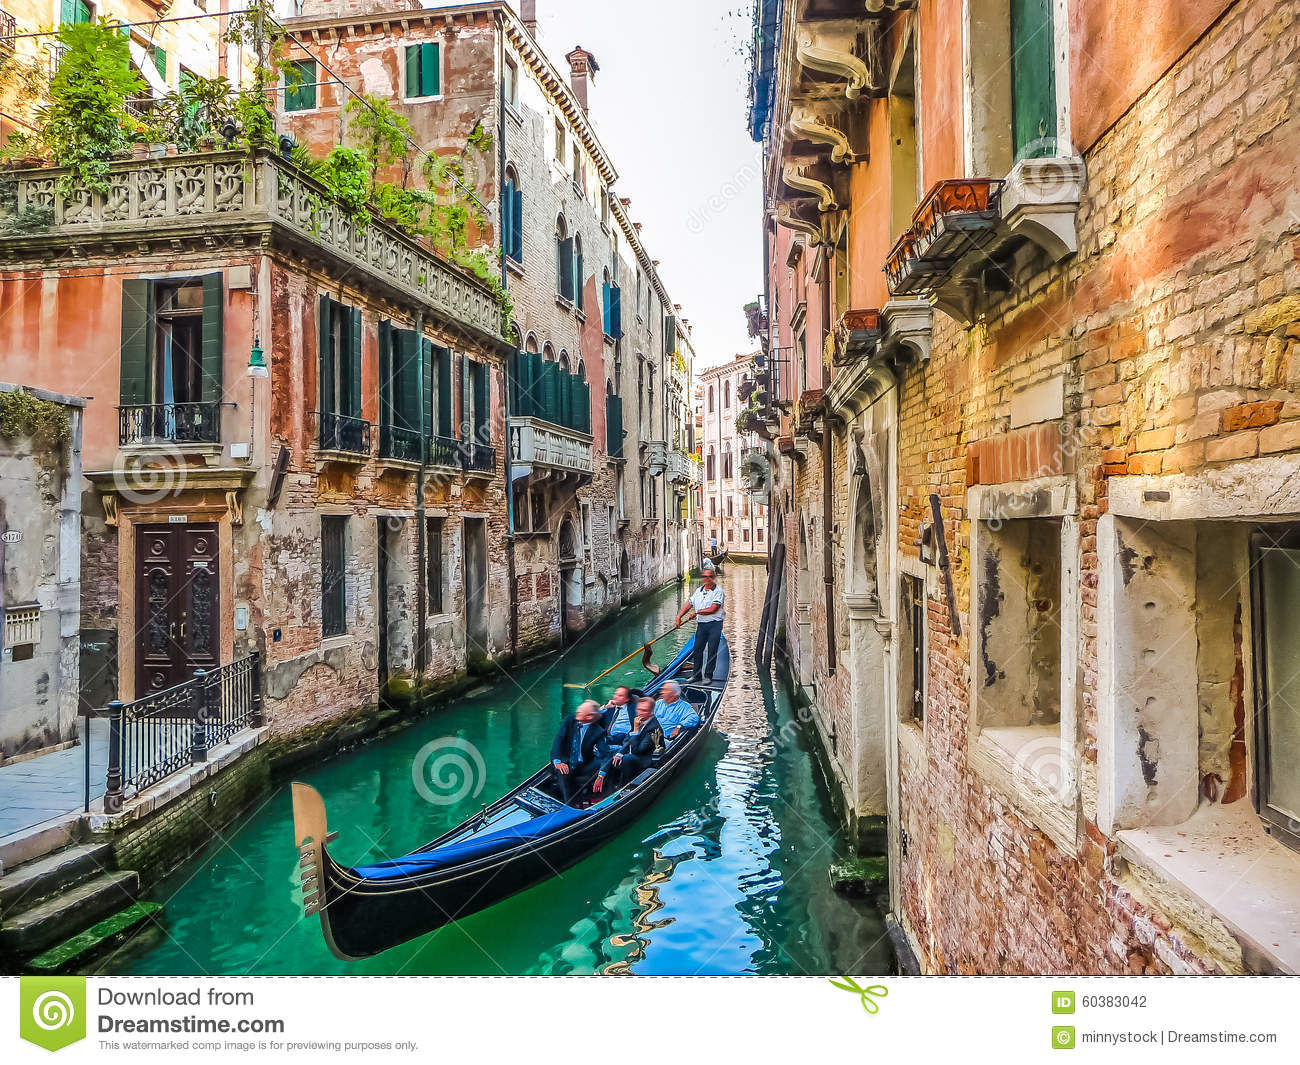 Traditional Gondolas on narrow canal between colorful houses, Venice, Italy